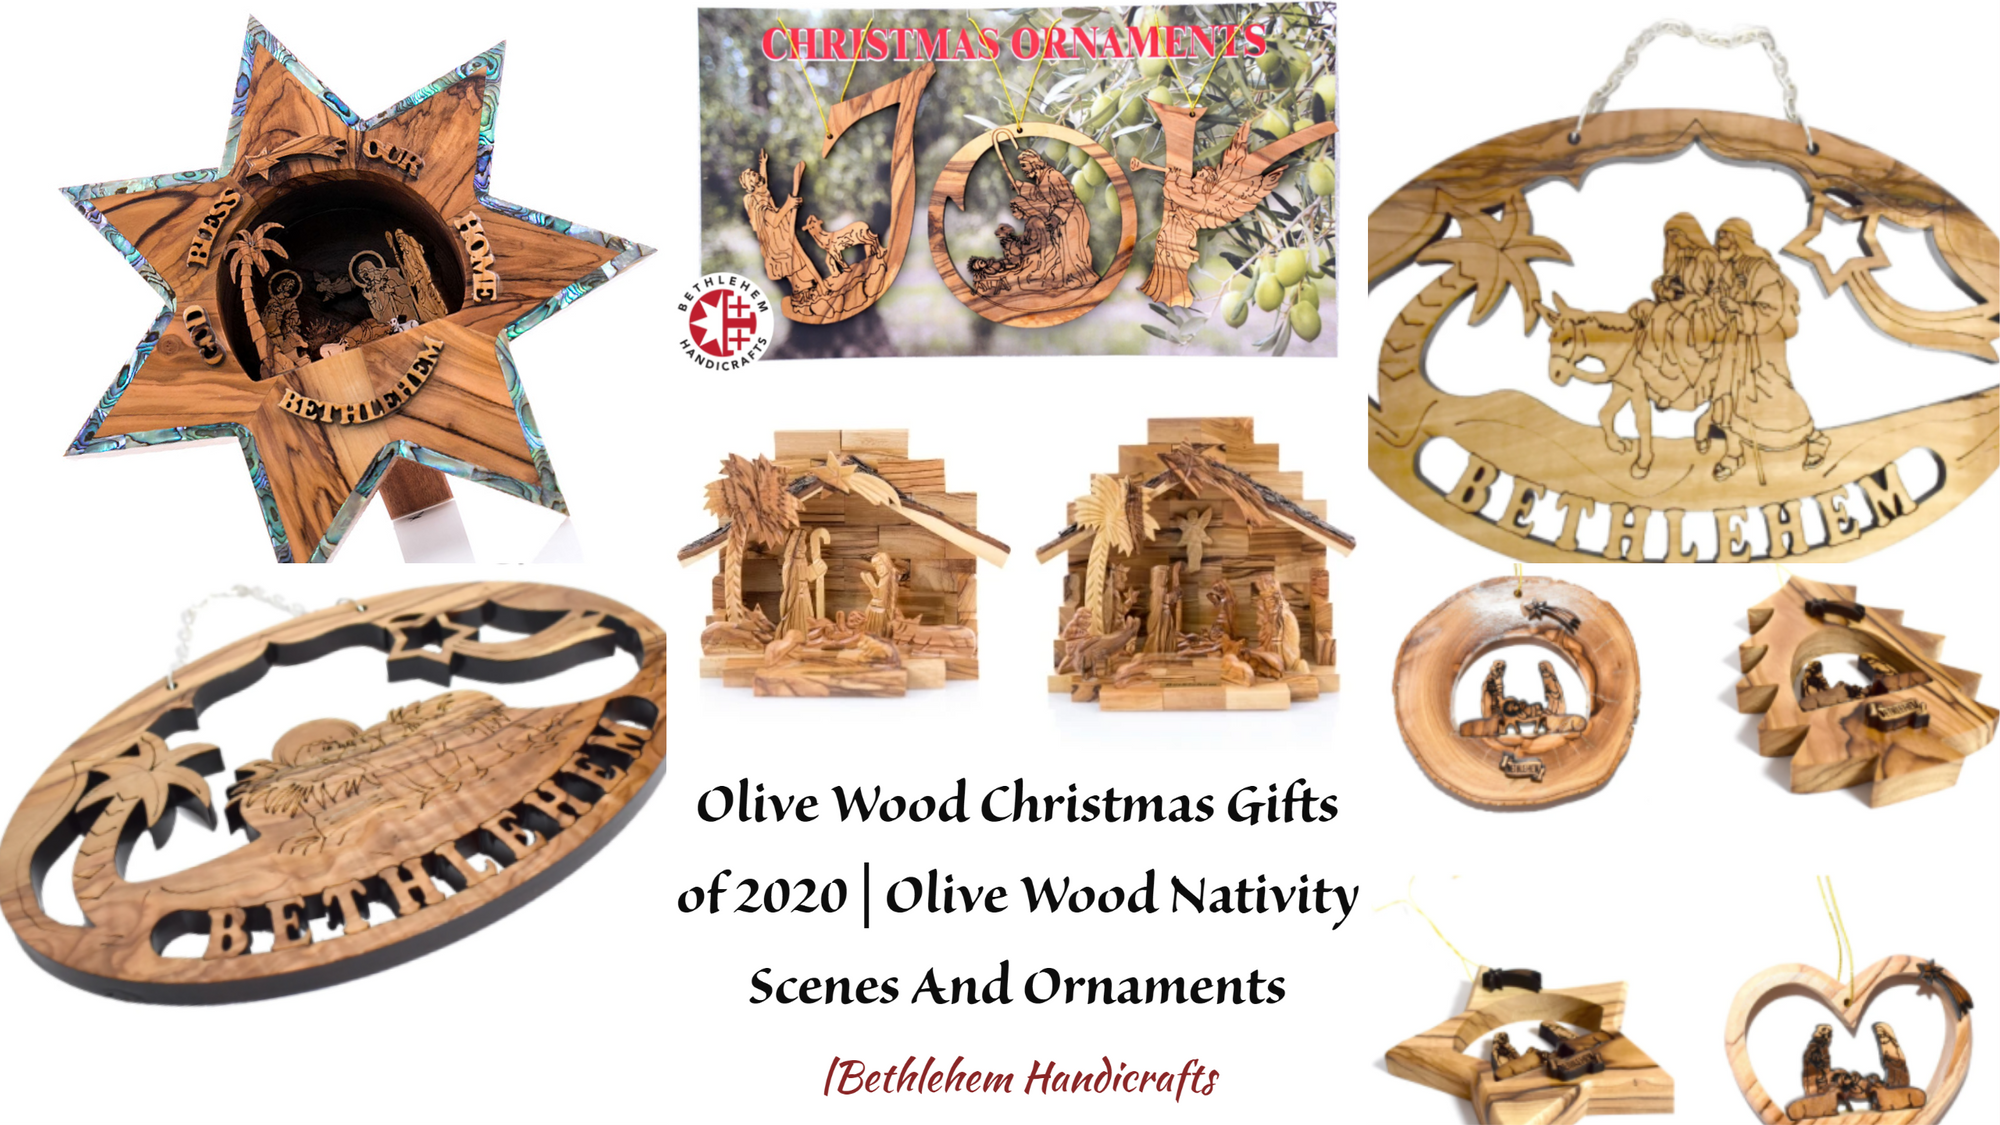 Olive Wood Christmas Gifts of 2020 | Olive Wood Nativity Scenes And Ornaments | Bethlehem Handicrafts